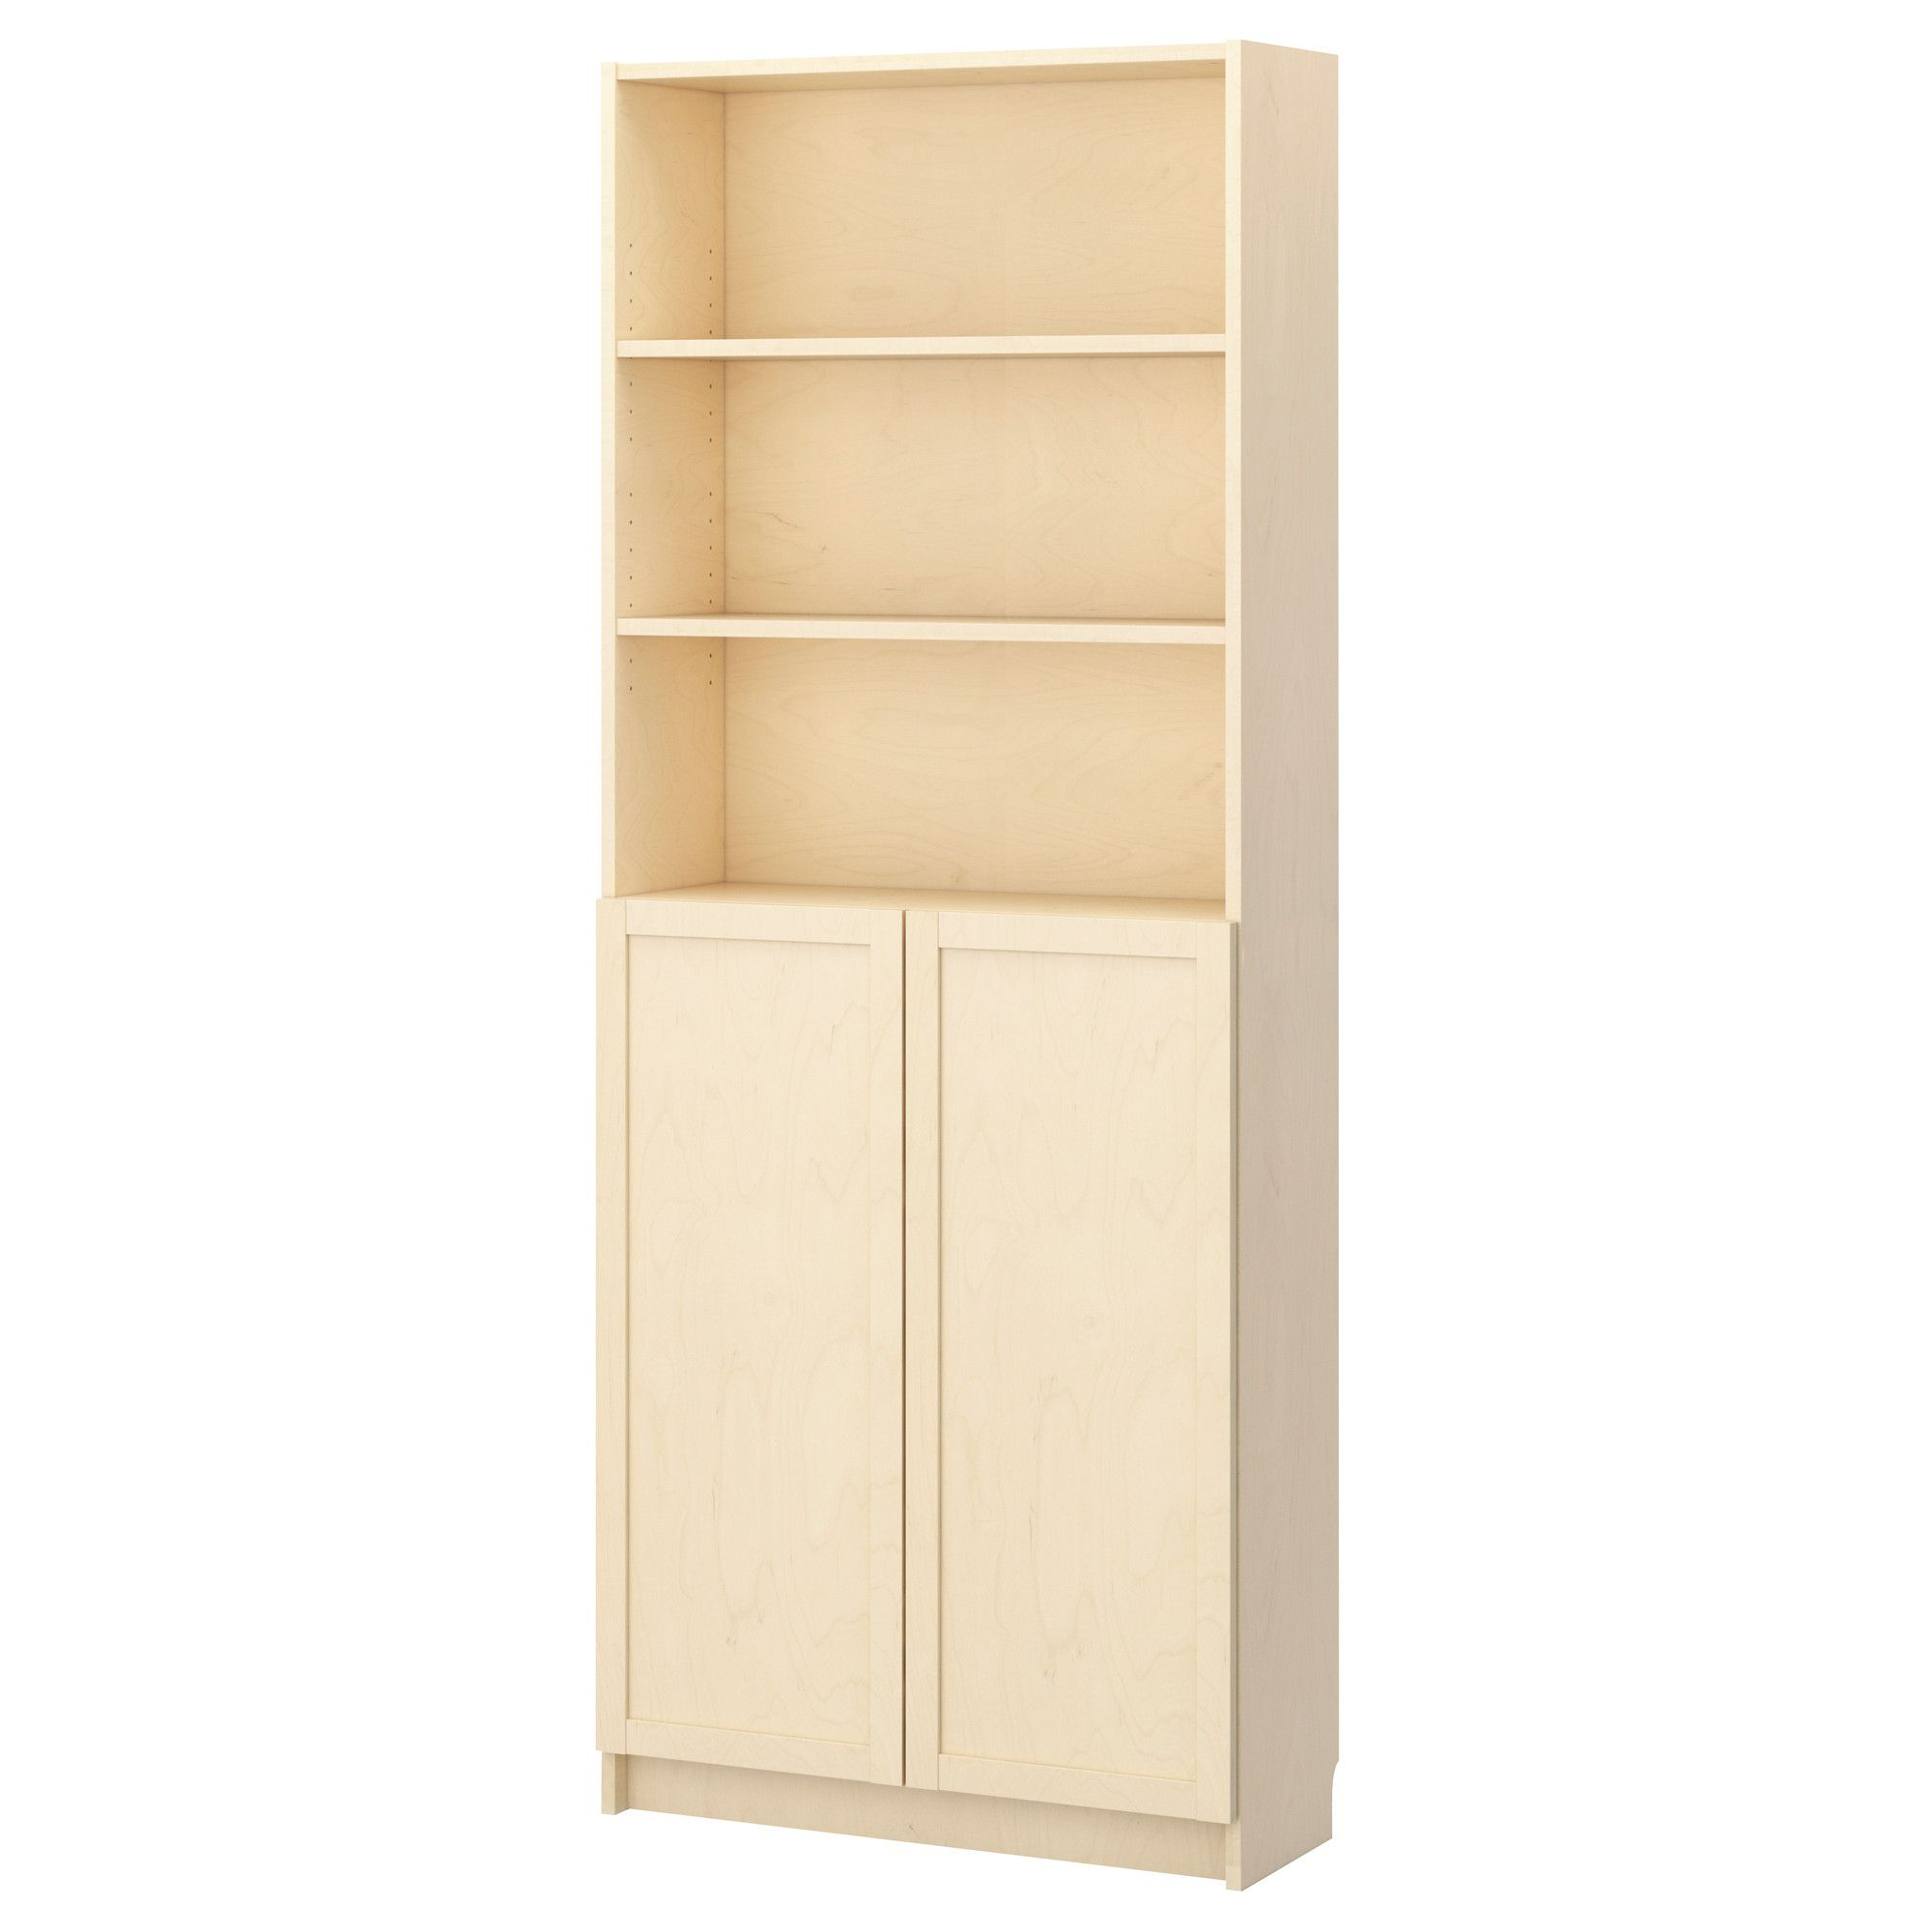 Le Meilleur Billy Bookcase With Doors Birch Veneer Ikea Width 31 Ce Mois Ci